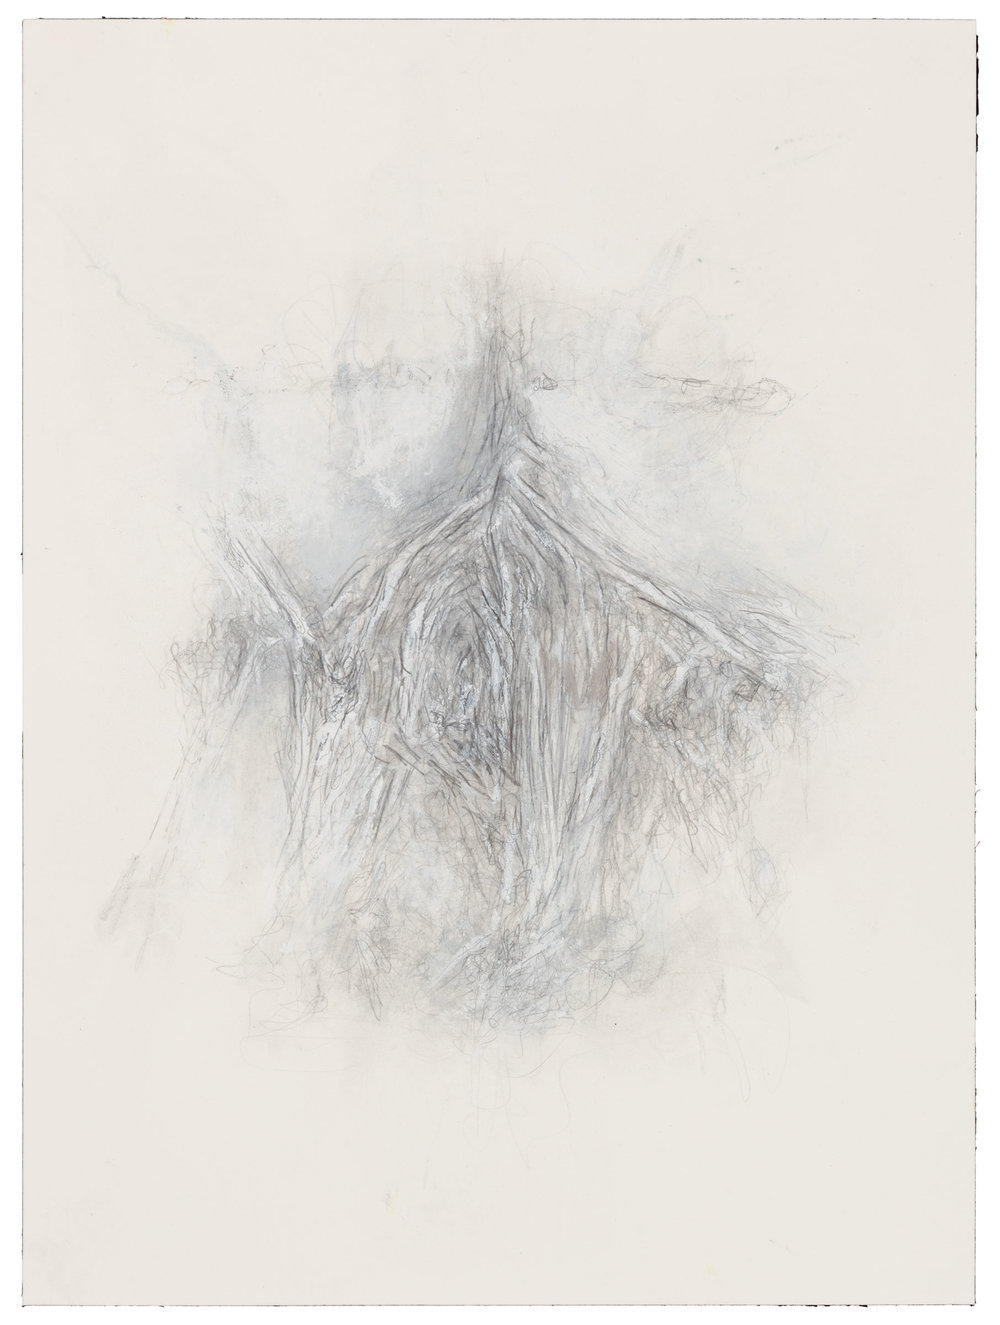 Hedda Sterne, Untitled (August 13, 2001), 2001, Mixed media on paper, 12 1/4 in. x 9 1/8 in. (31.12 cm x 23.18 cm)